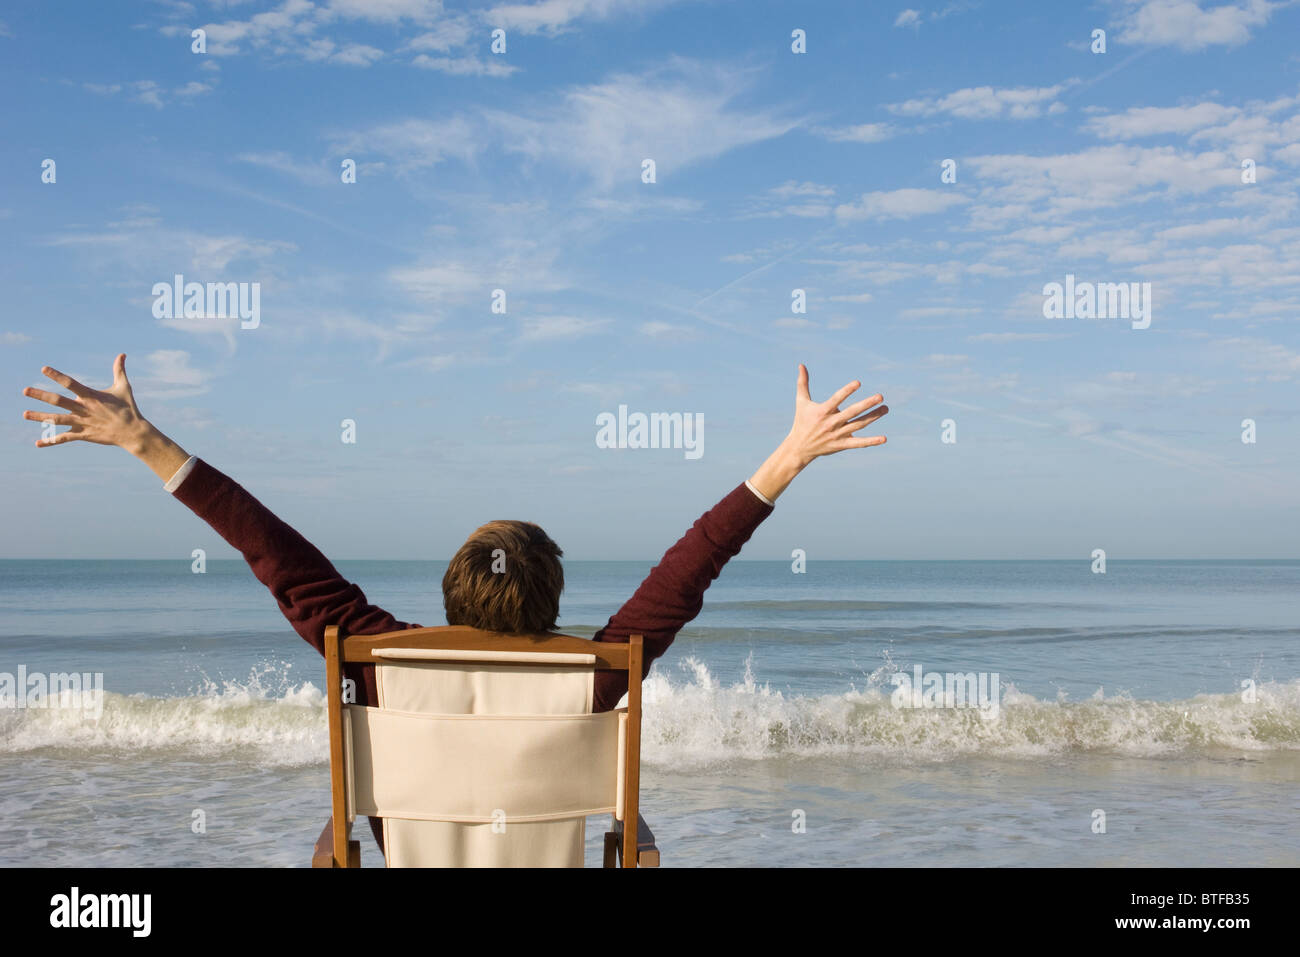 Young Man Sitting In Chair On Beach With Arms Raised Rear View Stock Photo Alamy